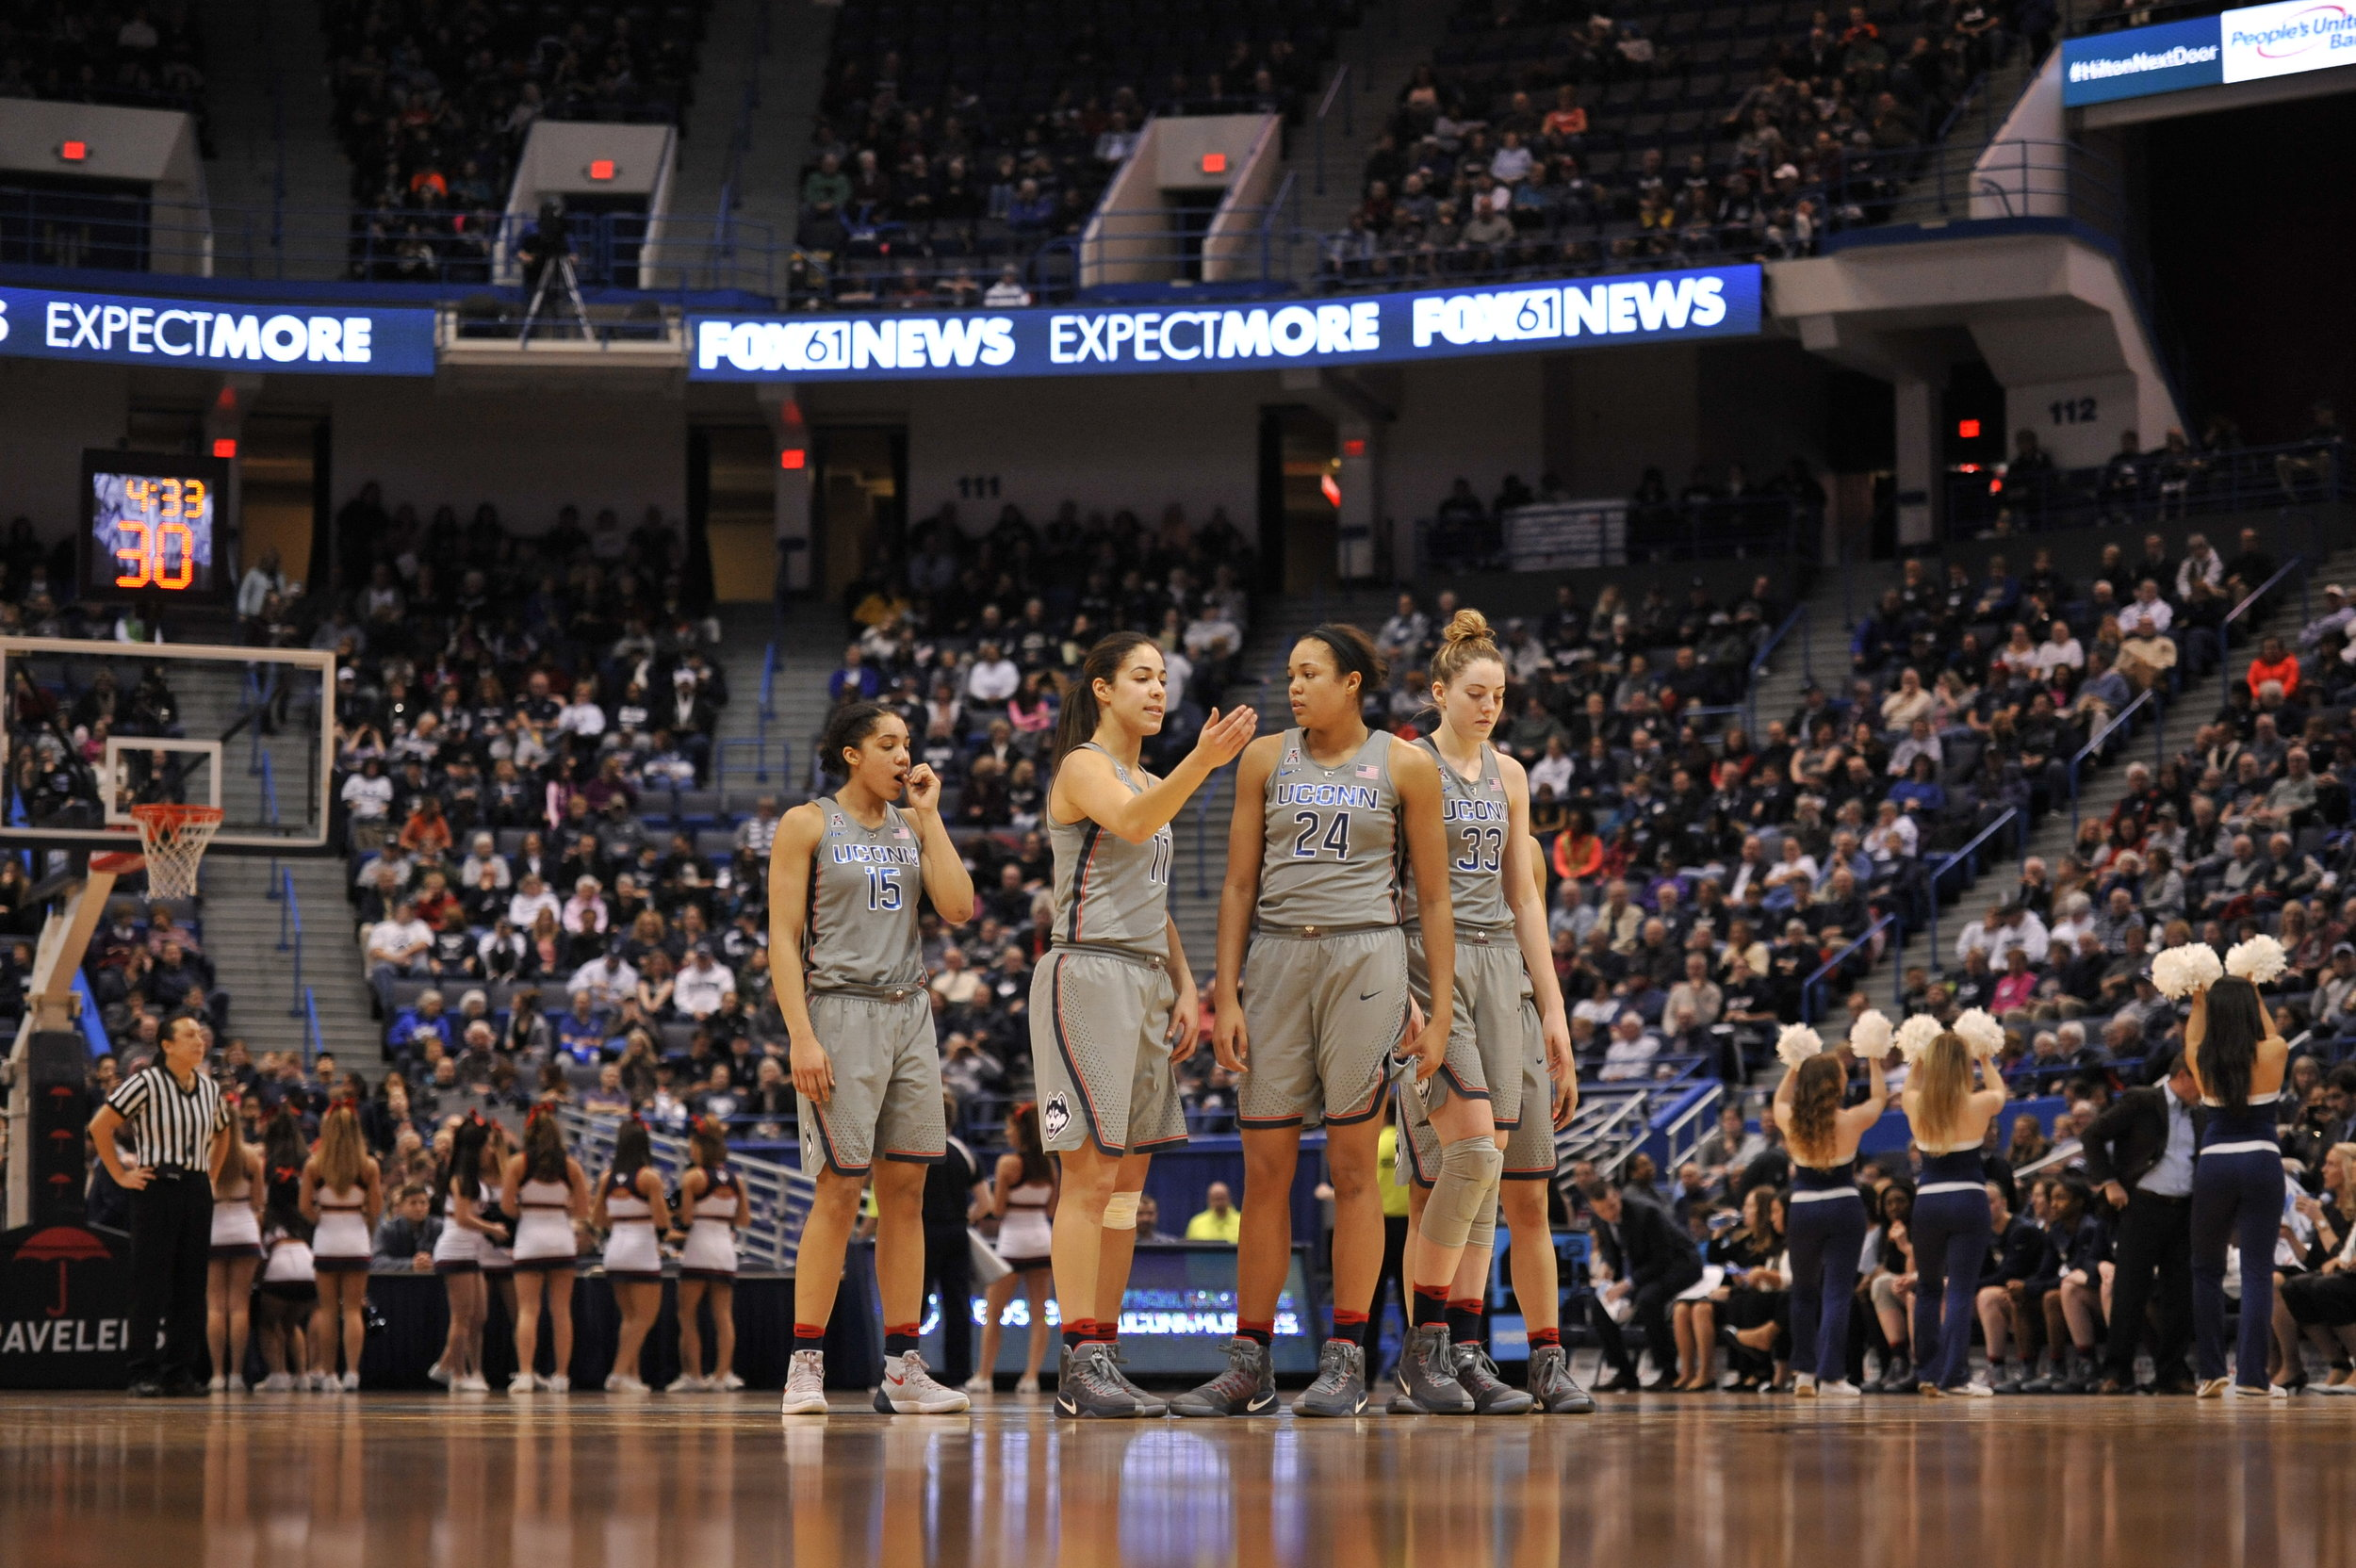 Junior Gabby Williams, junior Kia Nurse, sophomore Napheesa Collier and sophomore Katie Lou Samuelson stand at half court. (Jason Jiang/The Daily Campus)